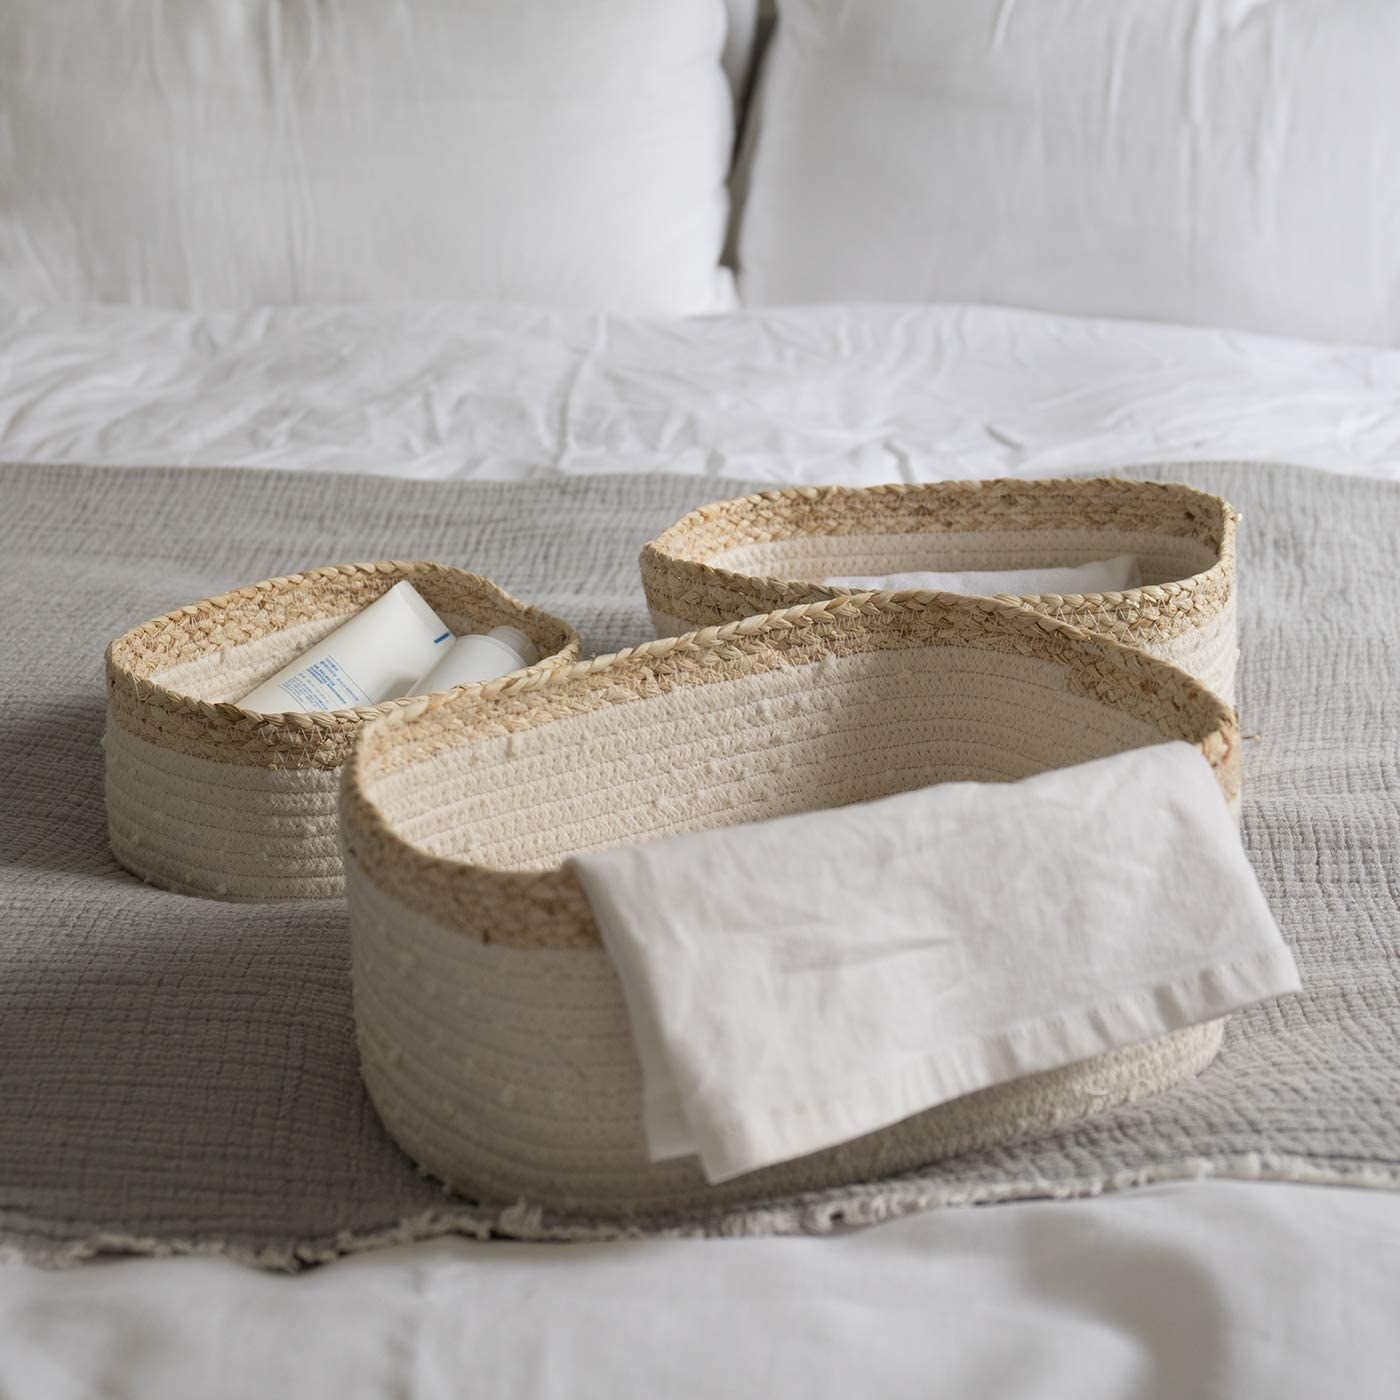 Three woven storage baskets in natural color and white